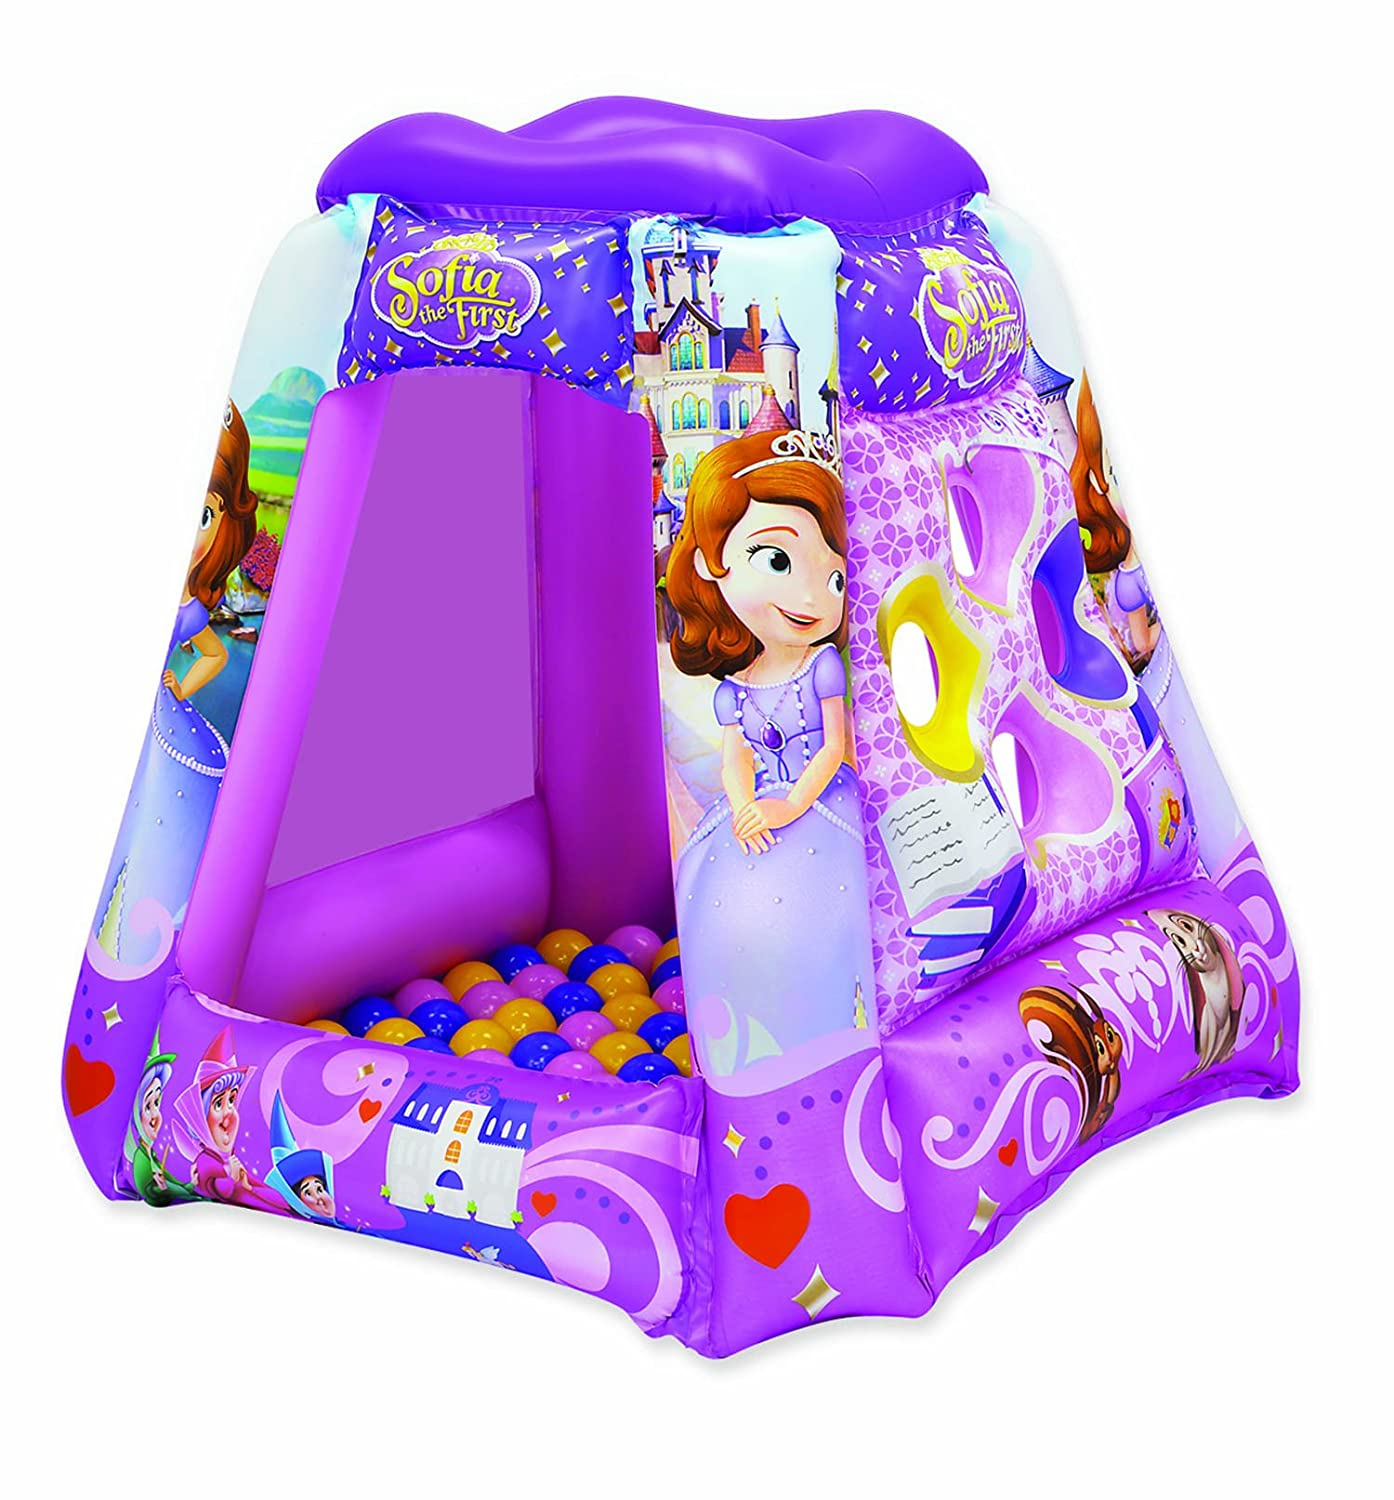 Sofia The First Princess in Training Ball Pit, 1 Inflatable & 20 Sof-Flex Balls, Purple, 37W x 37D x 34H Walt Disney 3391